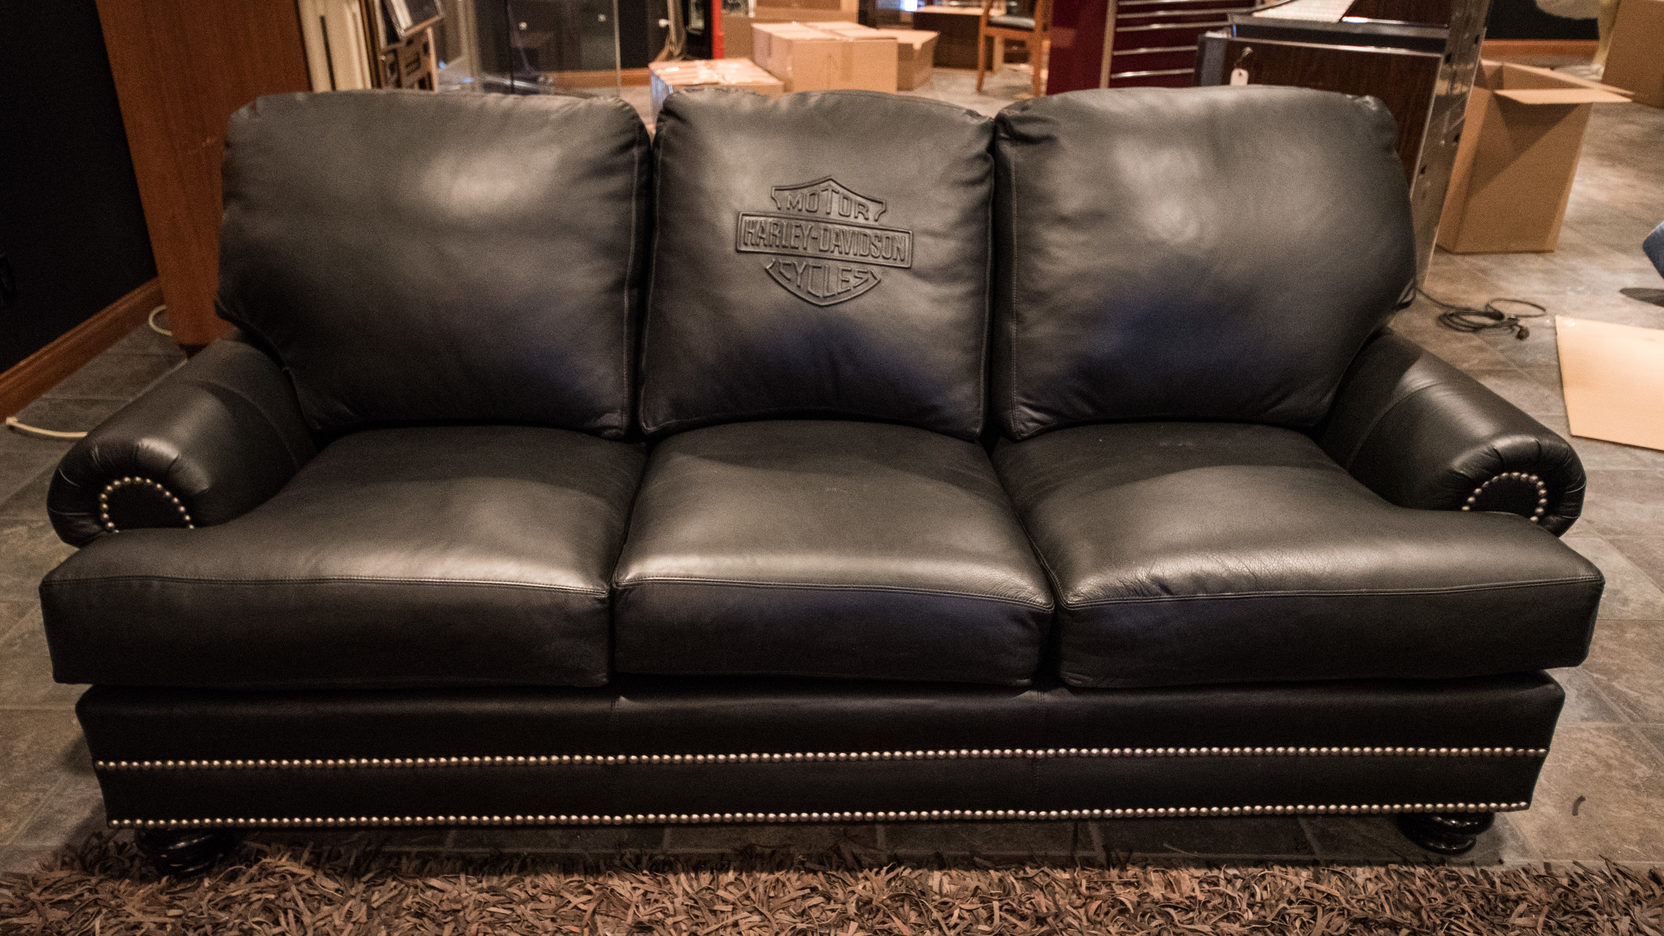 Harley Davidson Chairs Harley Davidson Leather Couch And 2 Leather Chairs K86